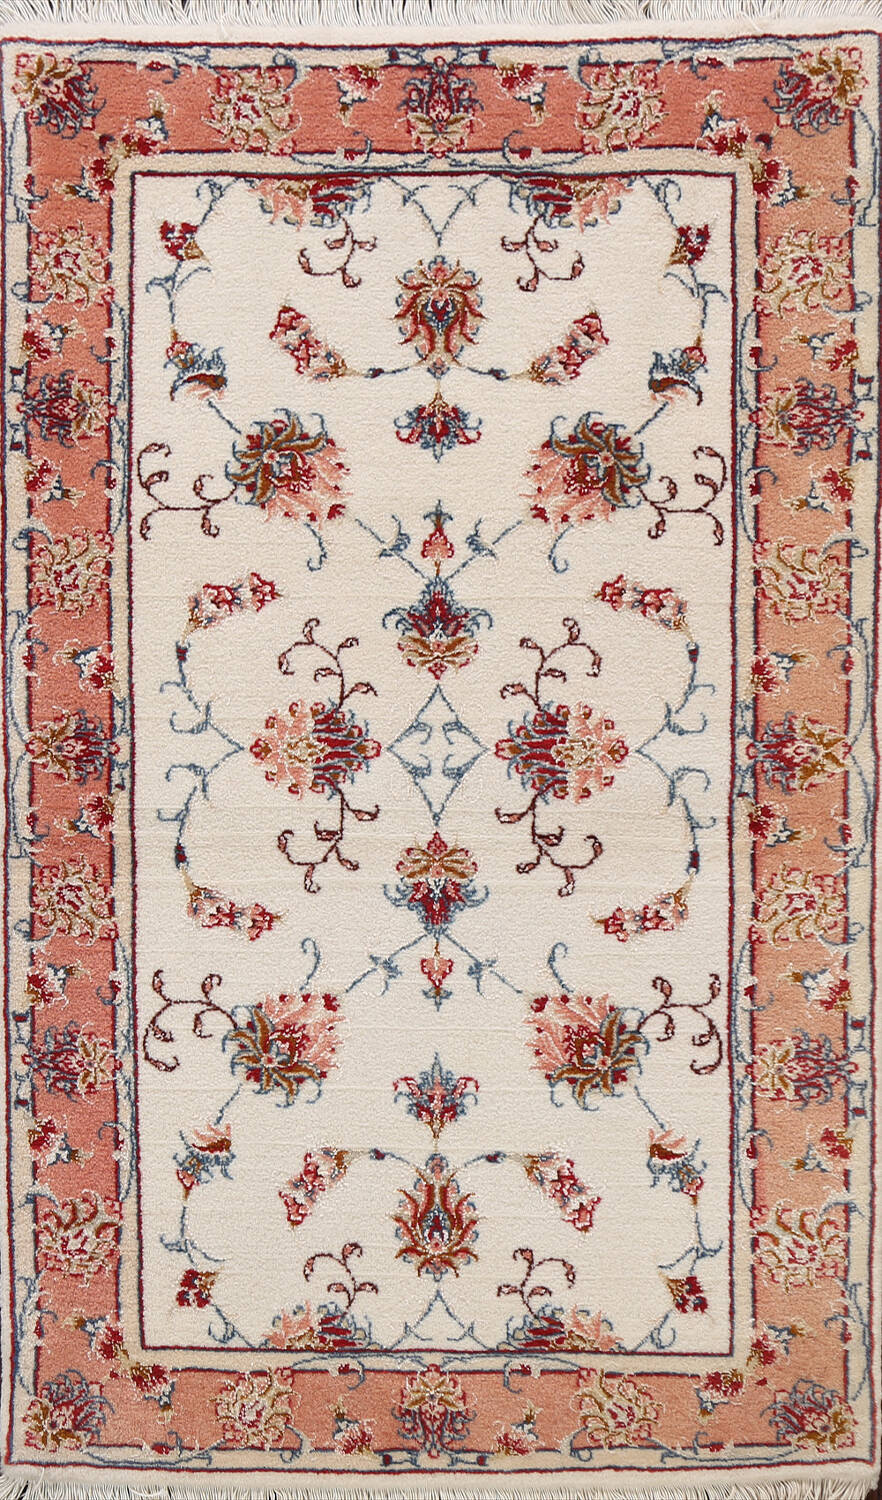 Vegetable Dye Wool/ Silk Floral Tabriz Persian Area Rug 2x4 image 1